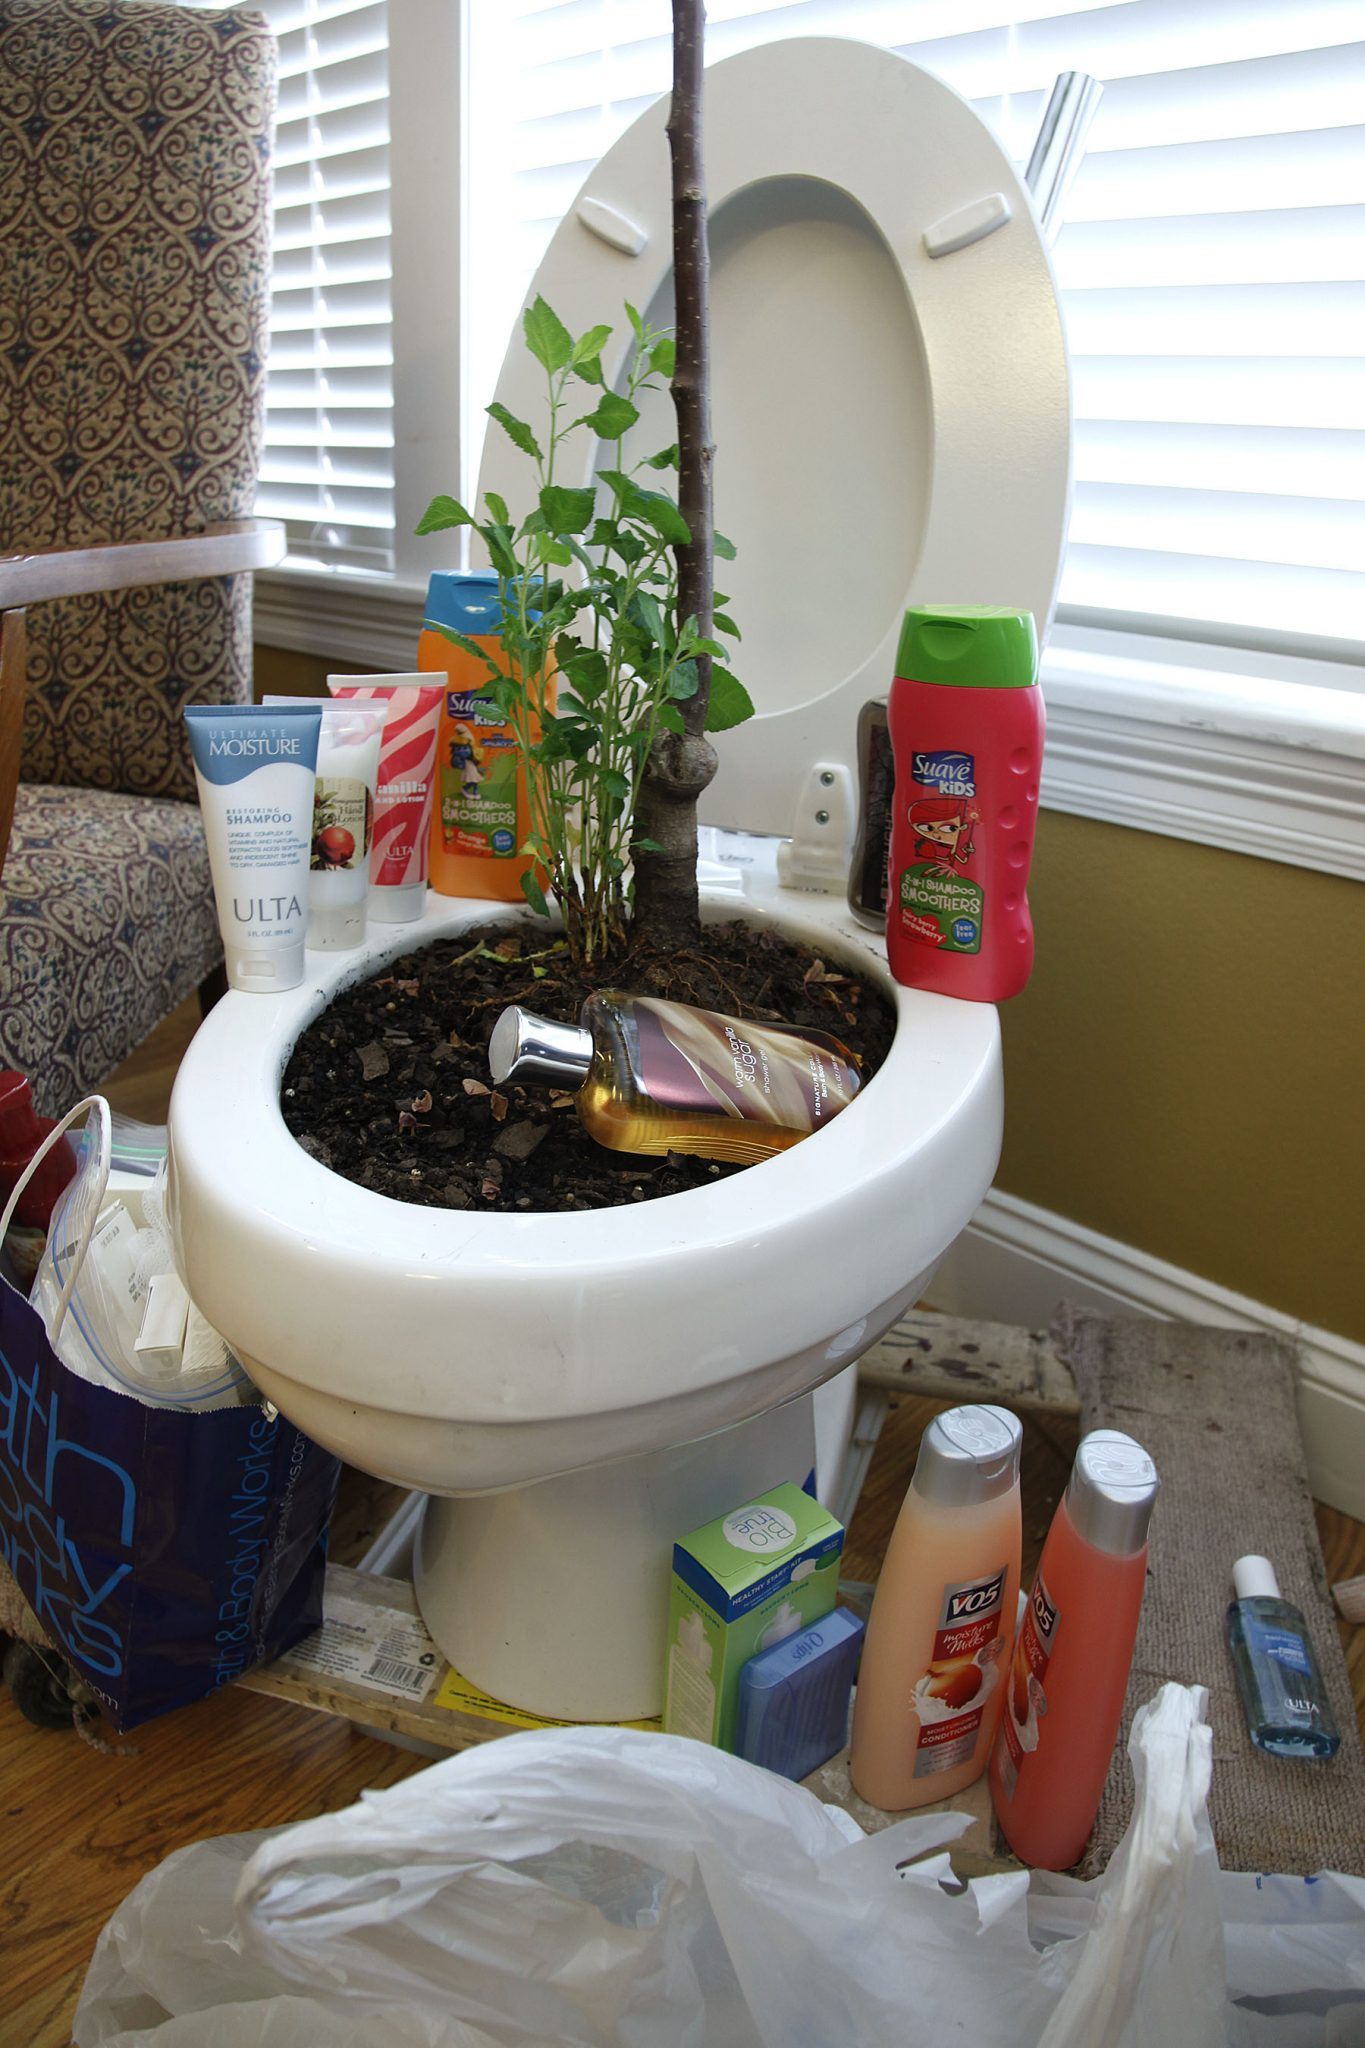 Honors House uses 'toilet-tree' for donations | The Bison